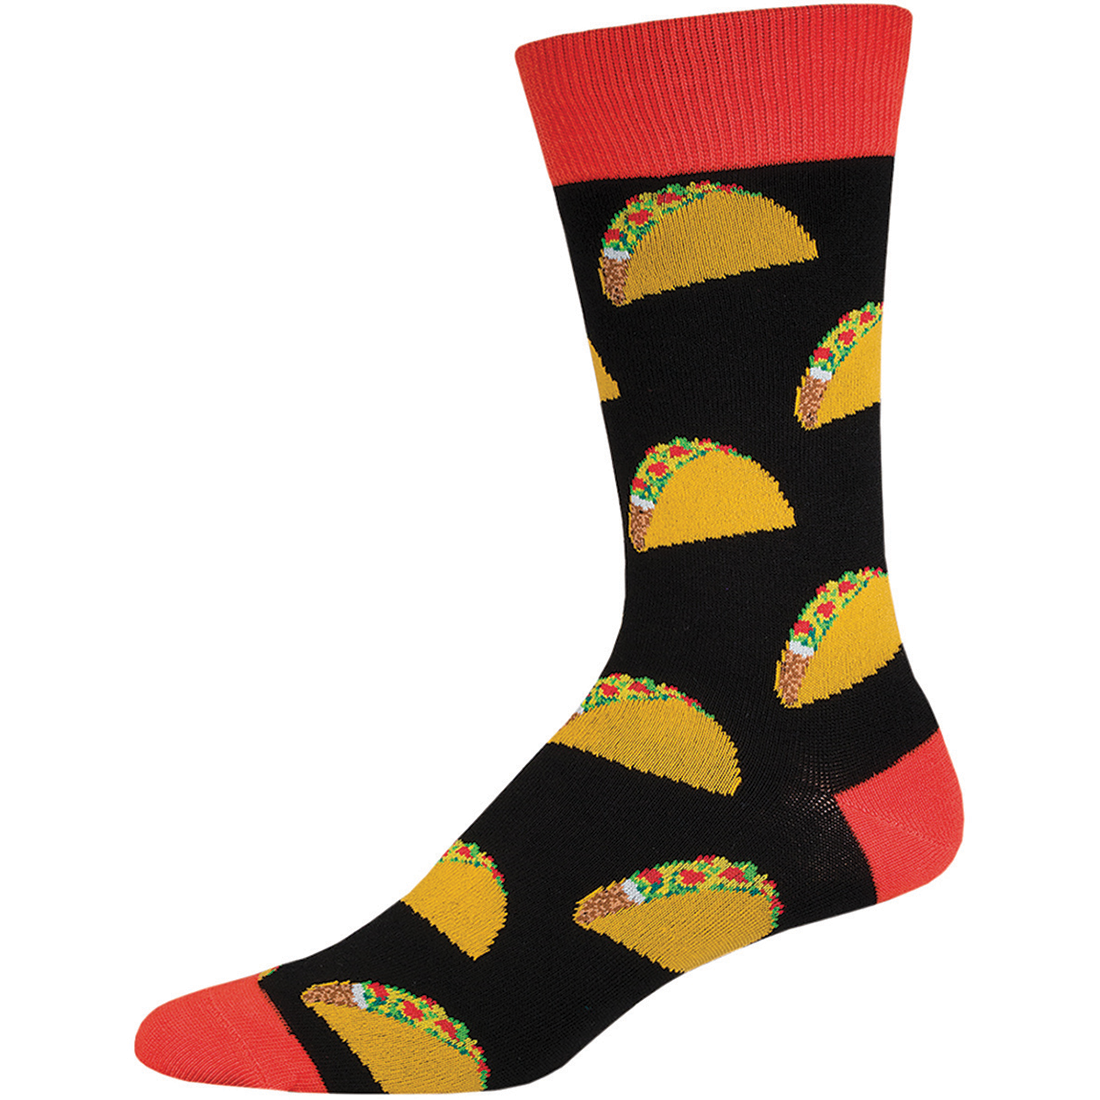 Black Taco Novelty Socks - Men's